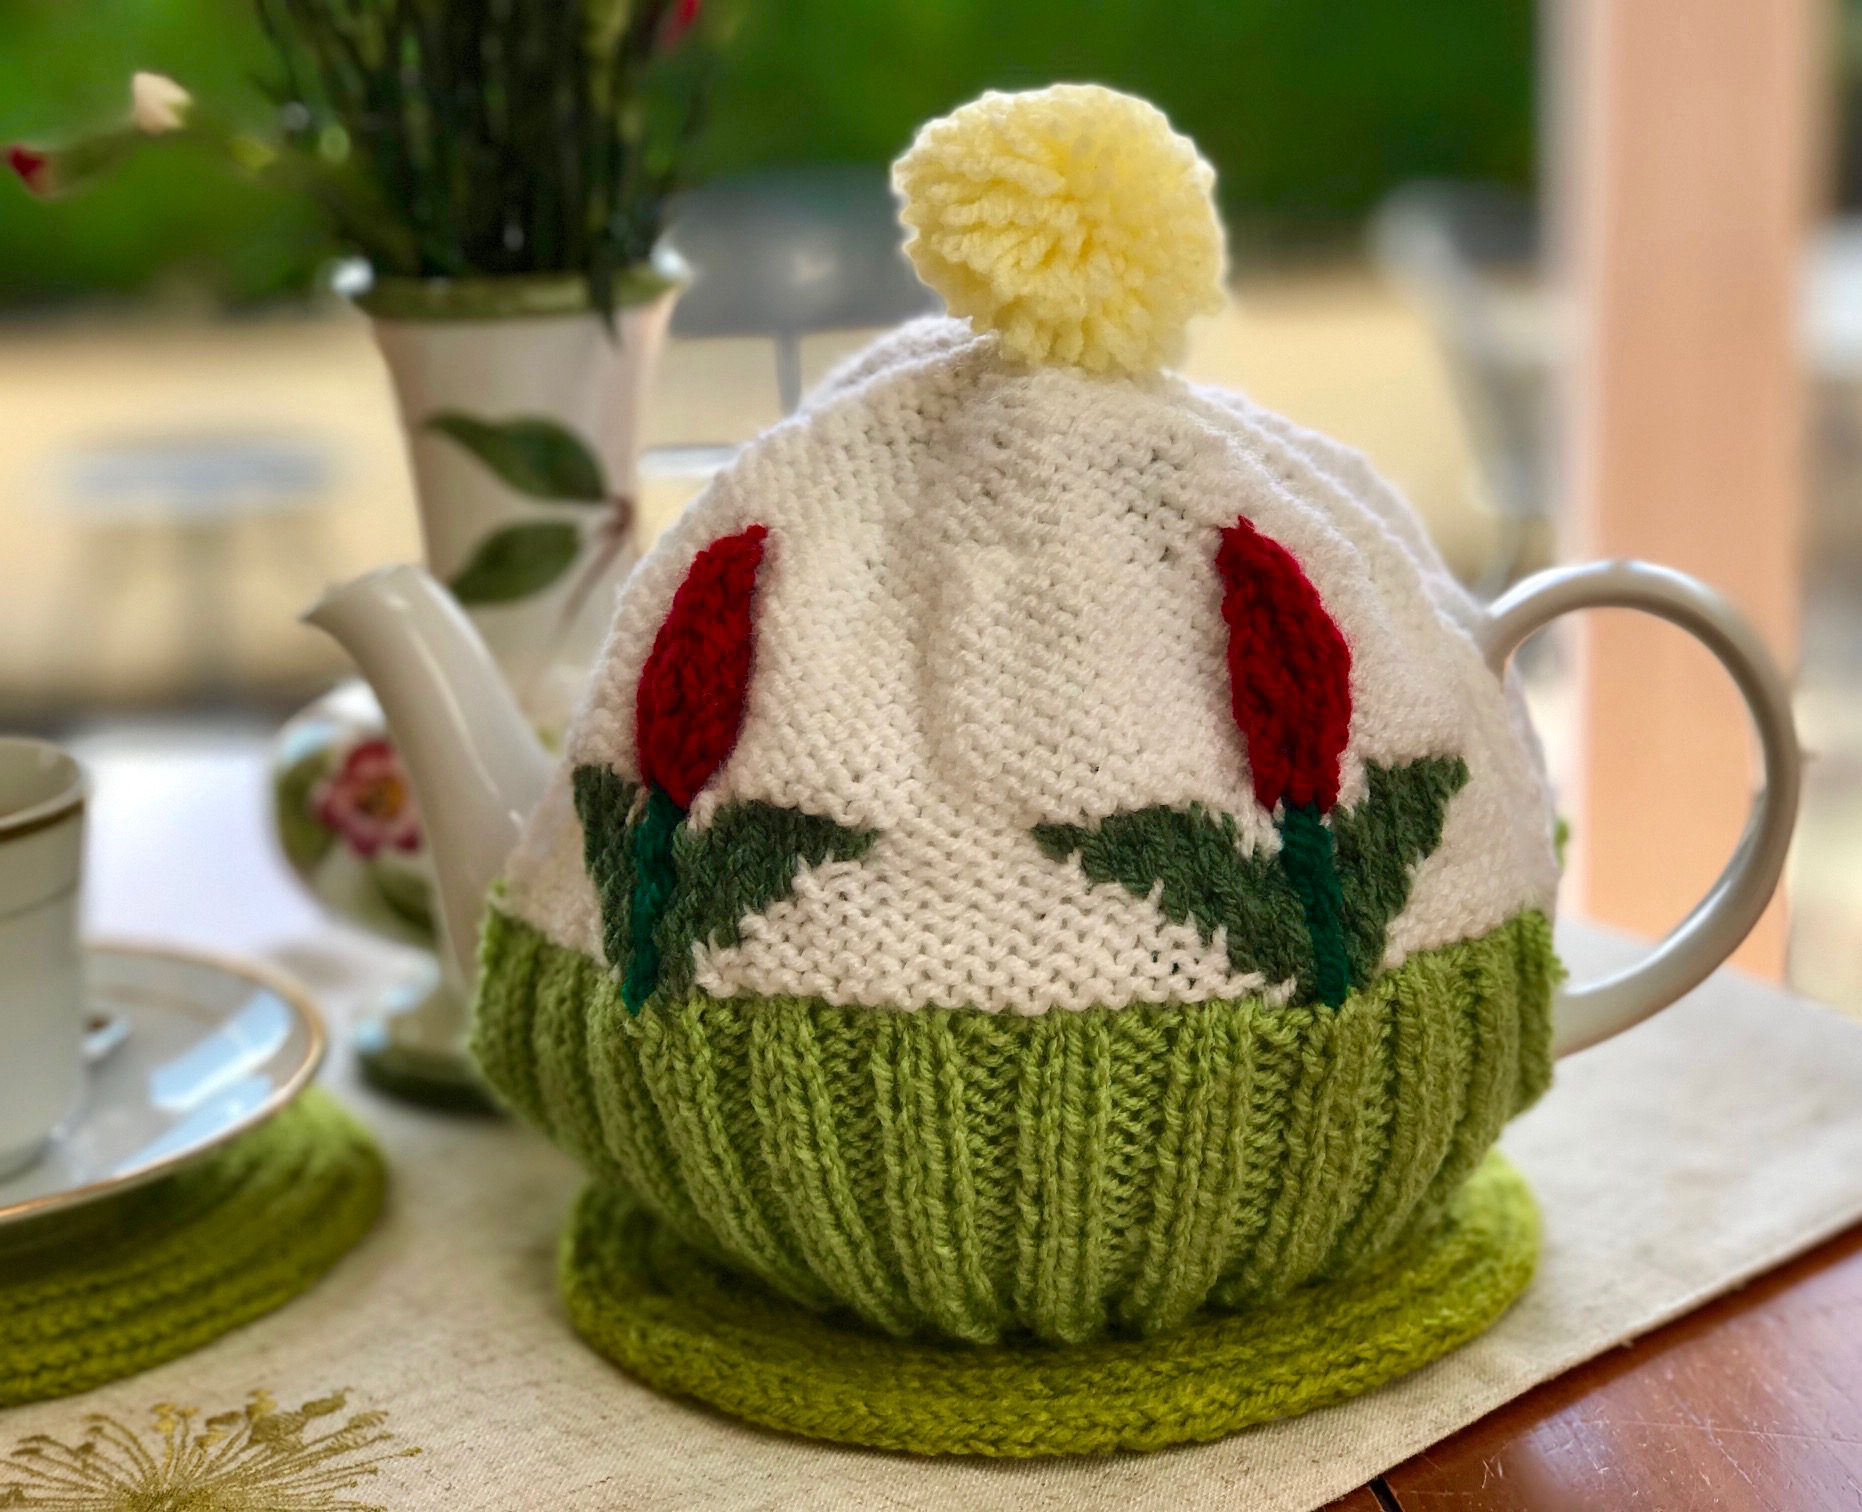 Tulip Tea Cosy Knitting Pattern